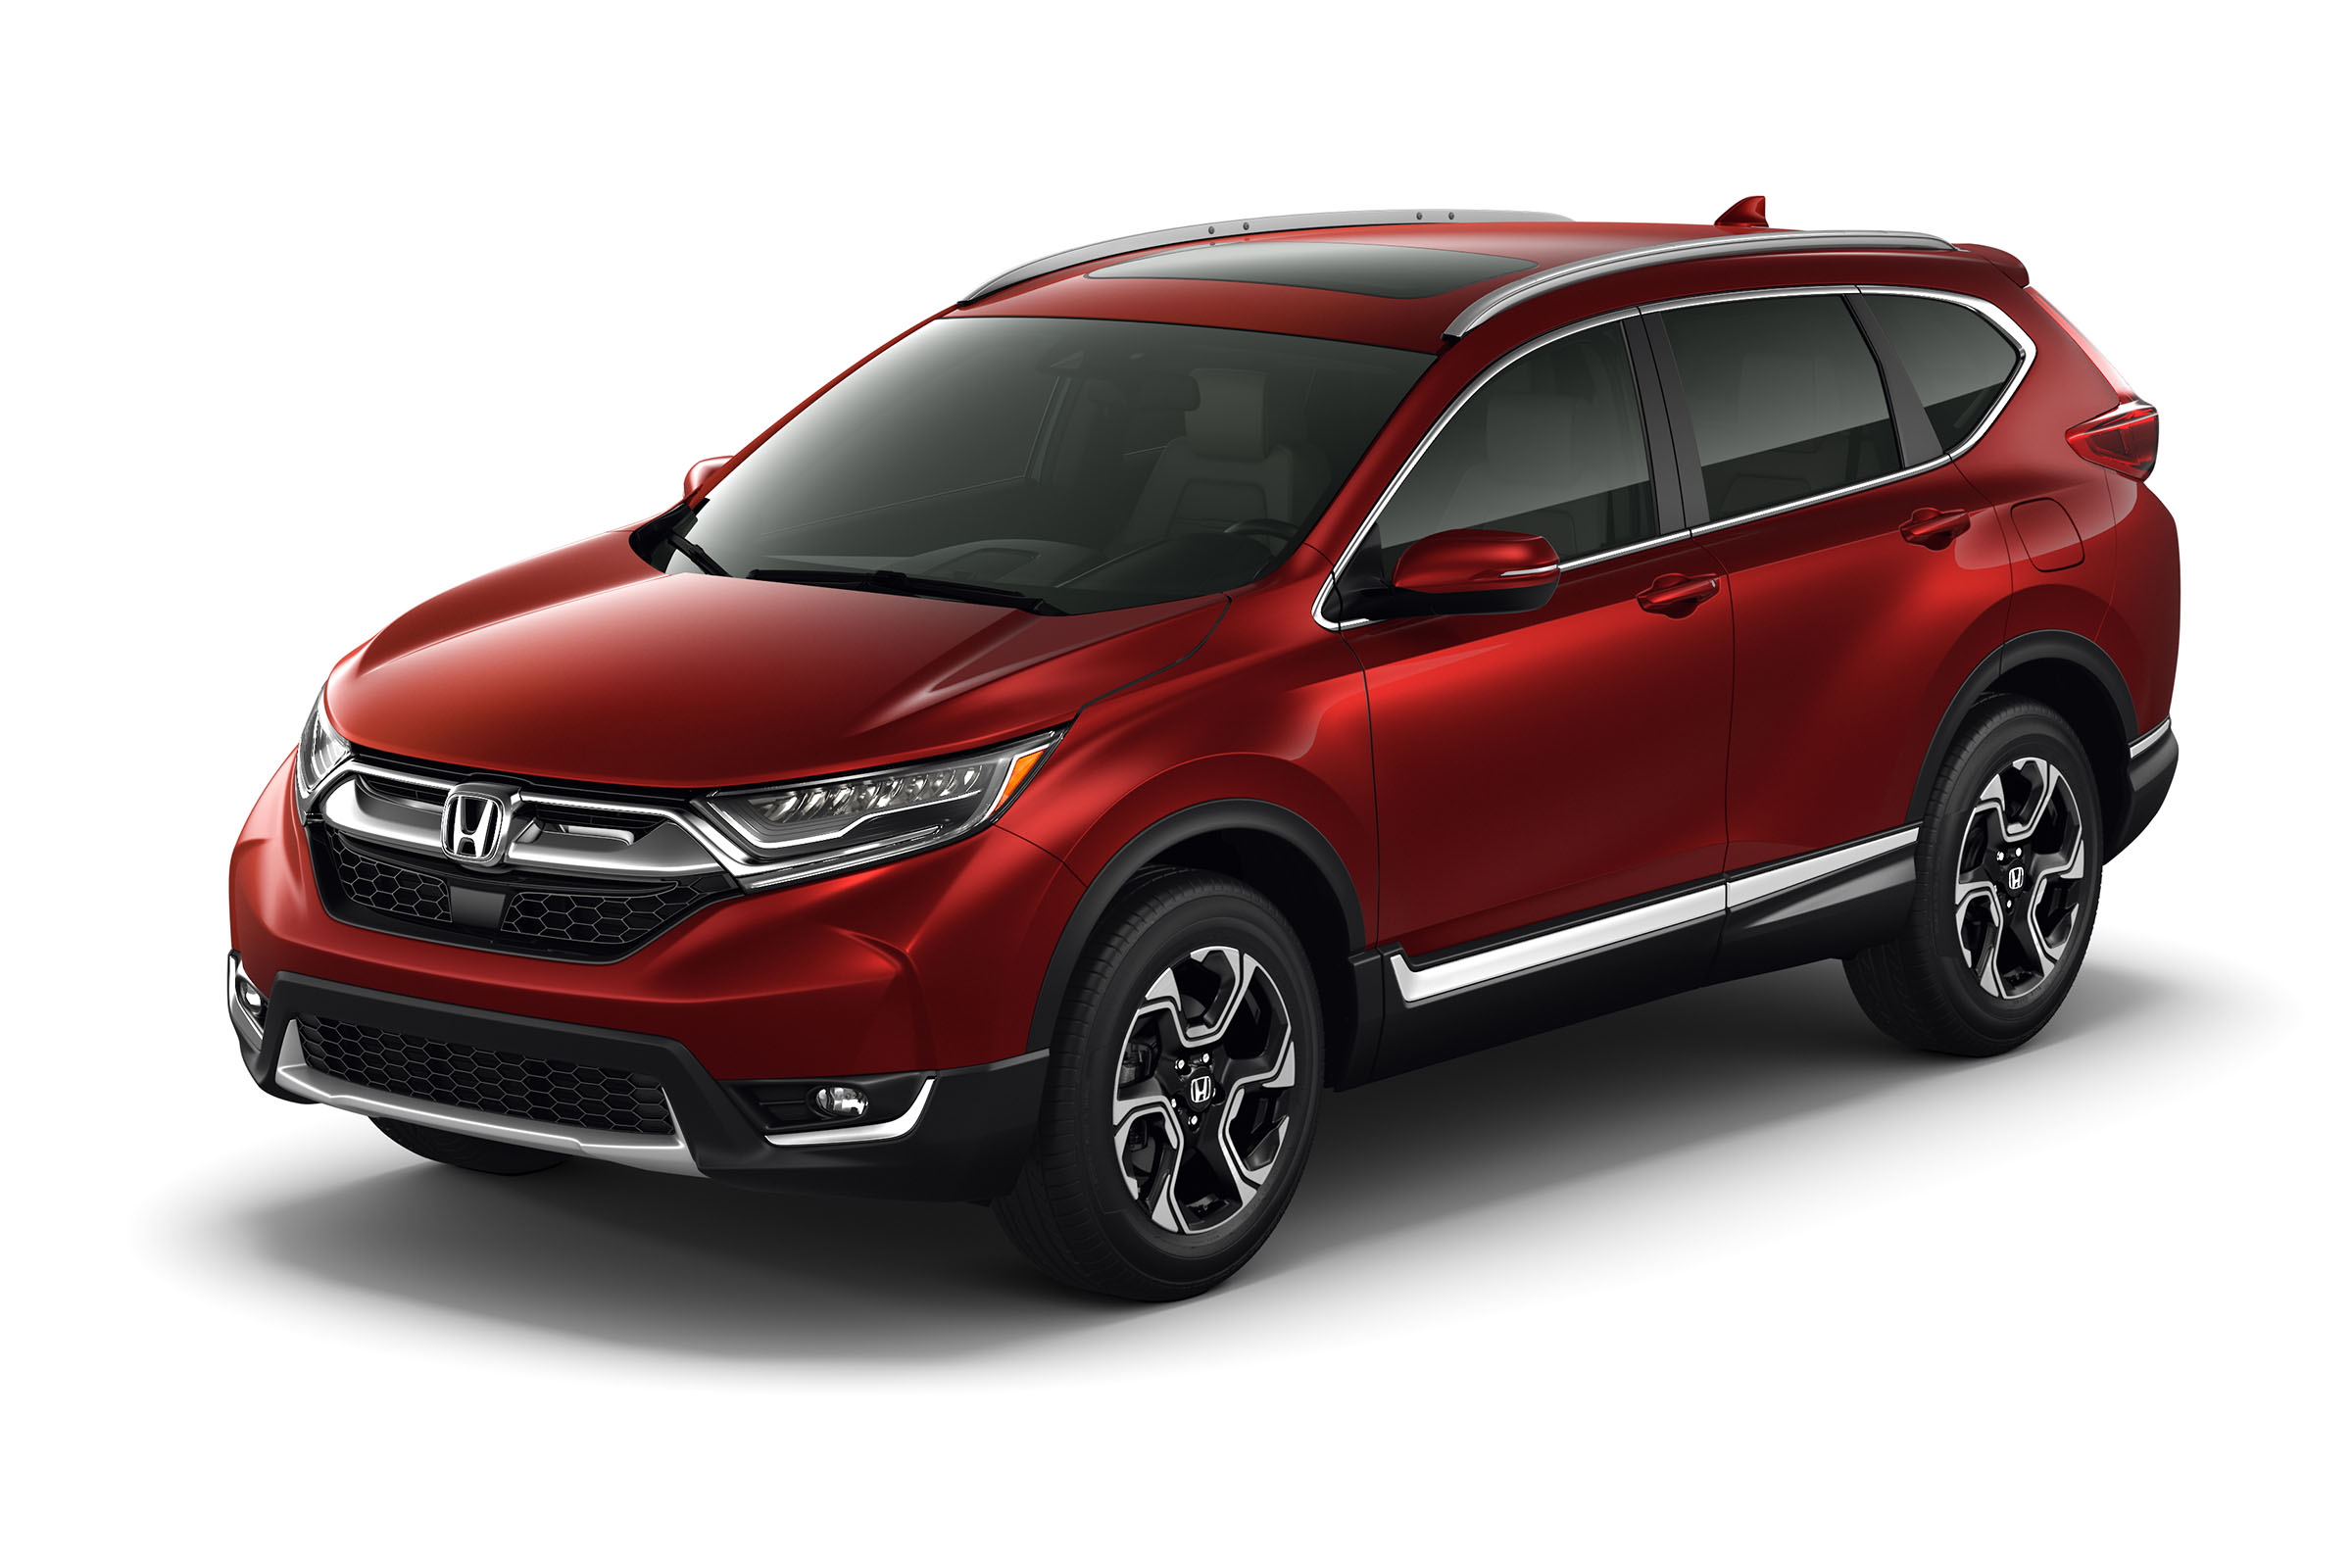 2018 Honda CR-V Hybrid to hit the upcoming Frankfurt motor show